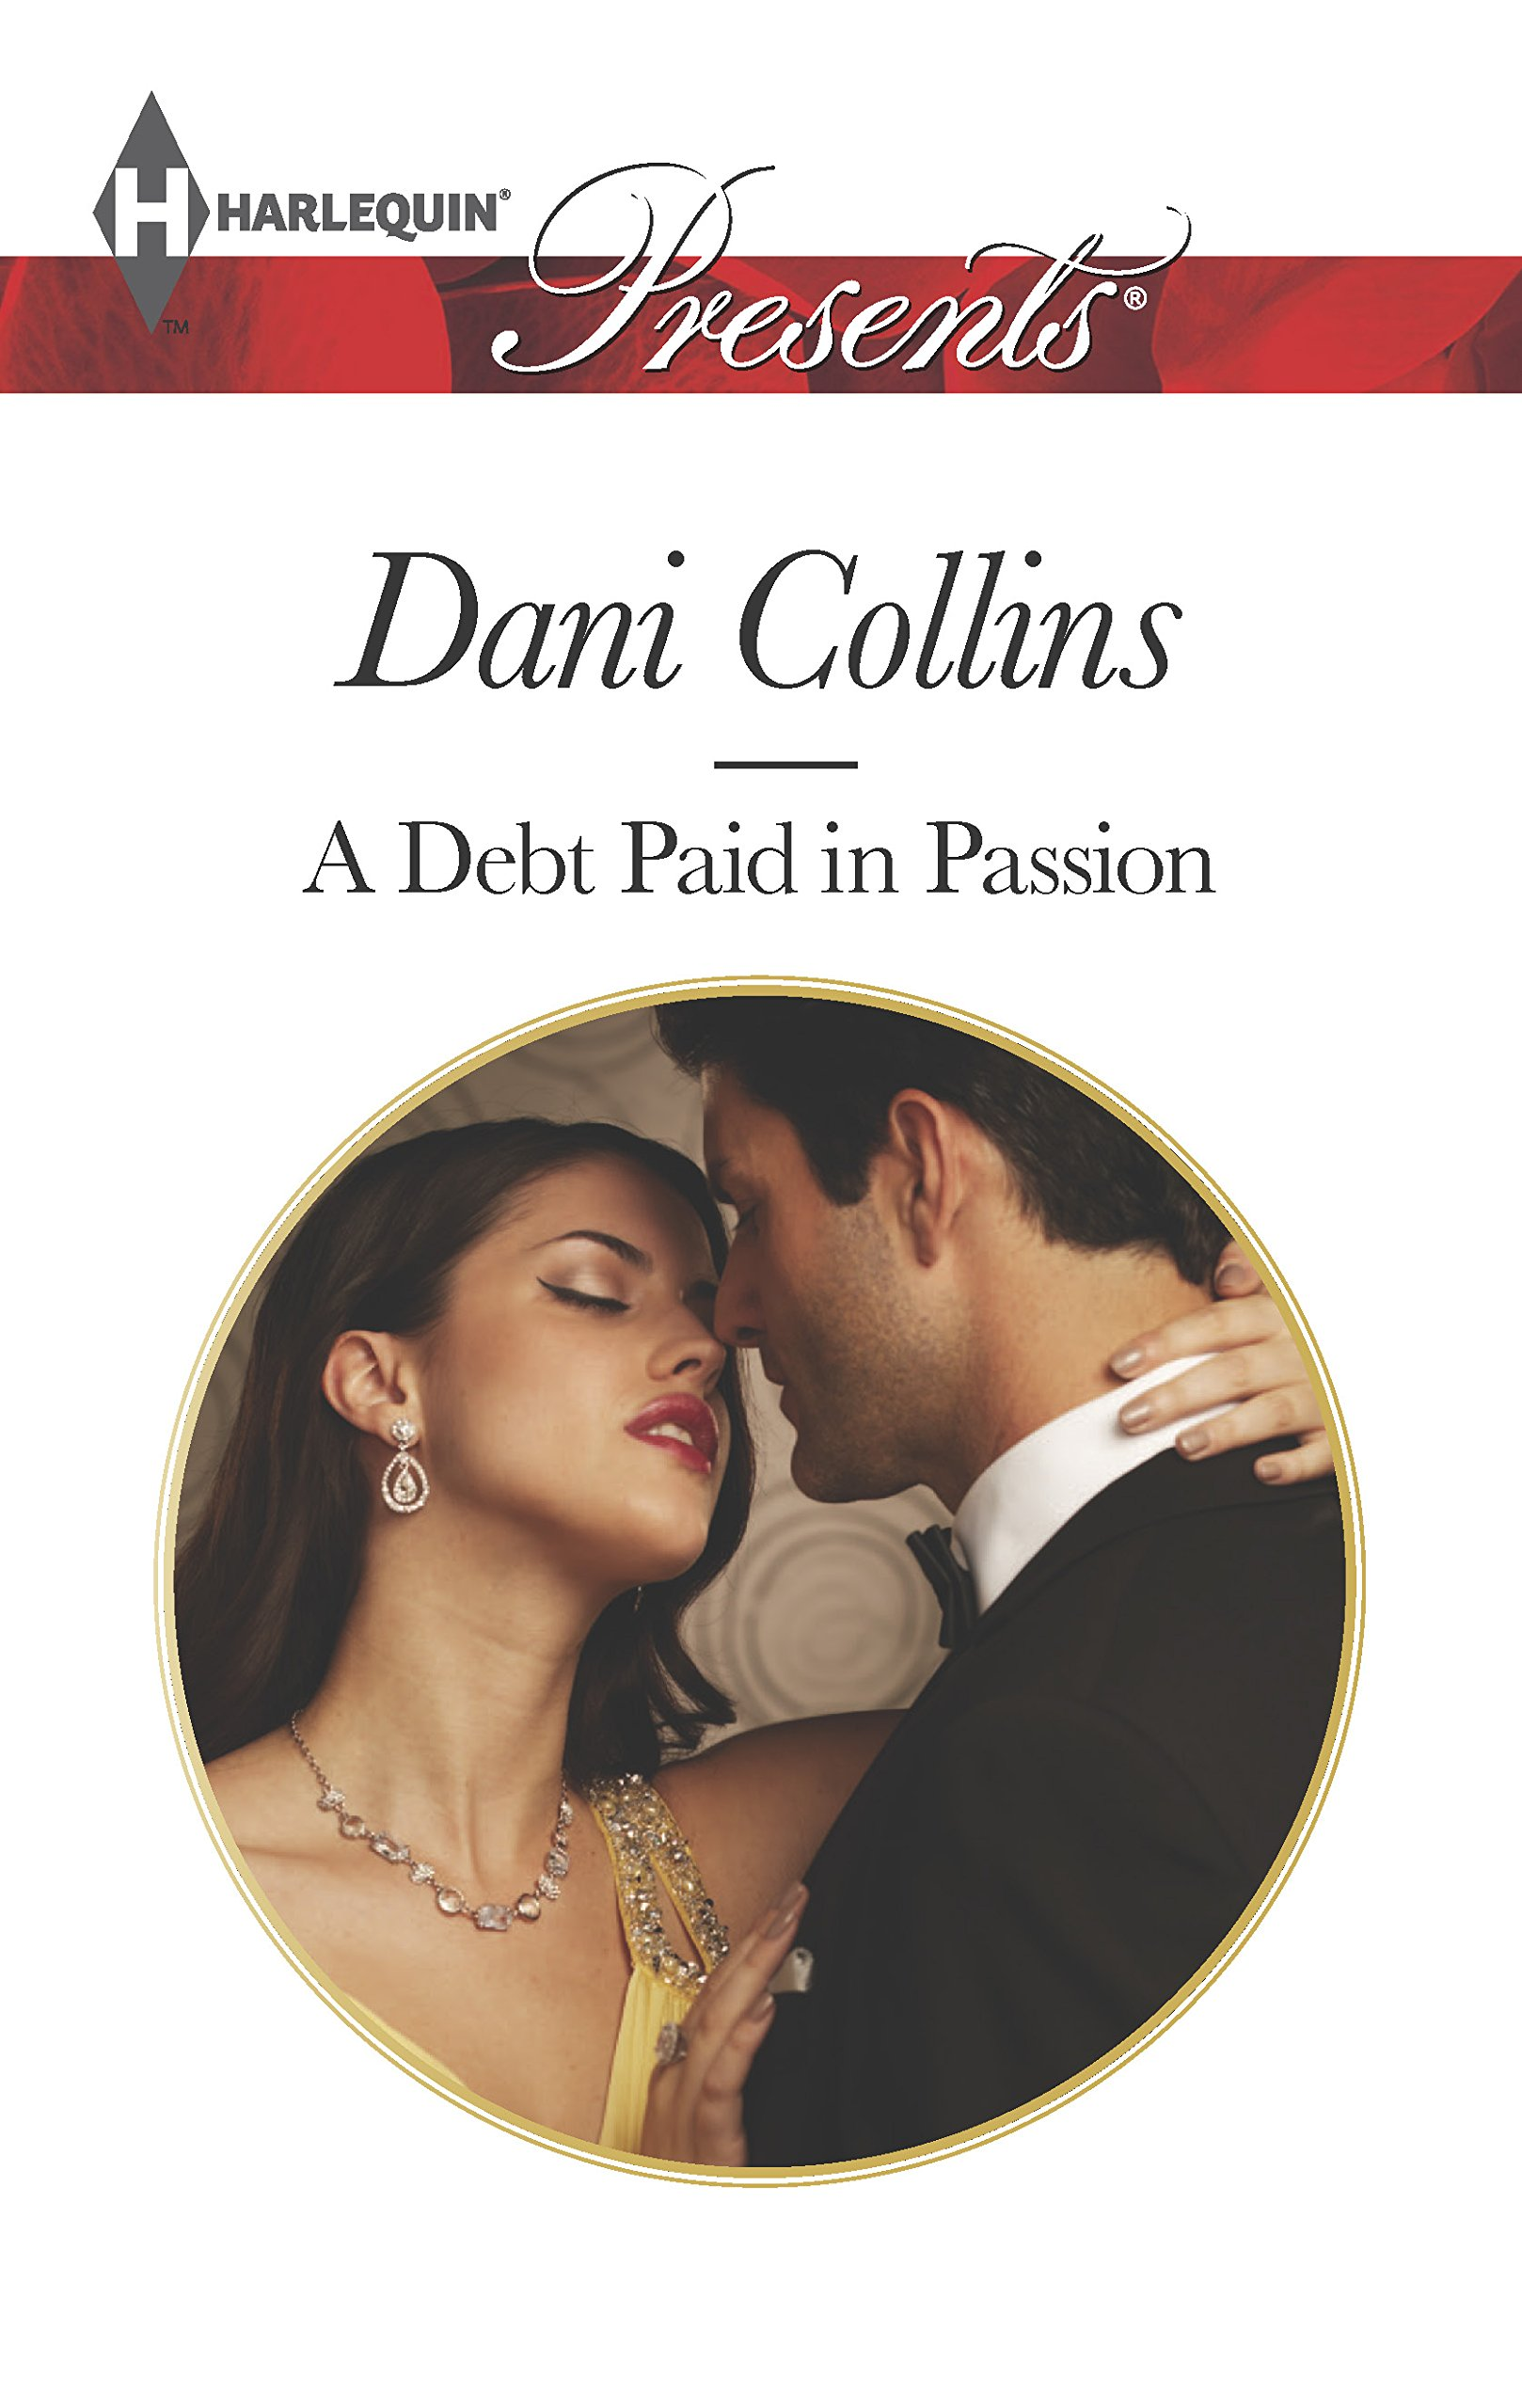 A Debt Paid in Passion (Harlequin Presents): Dani Collins